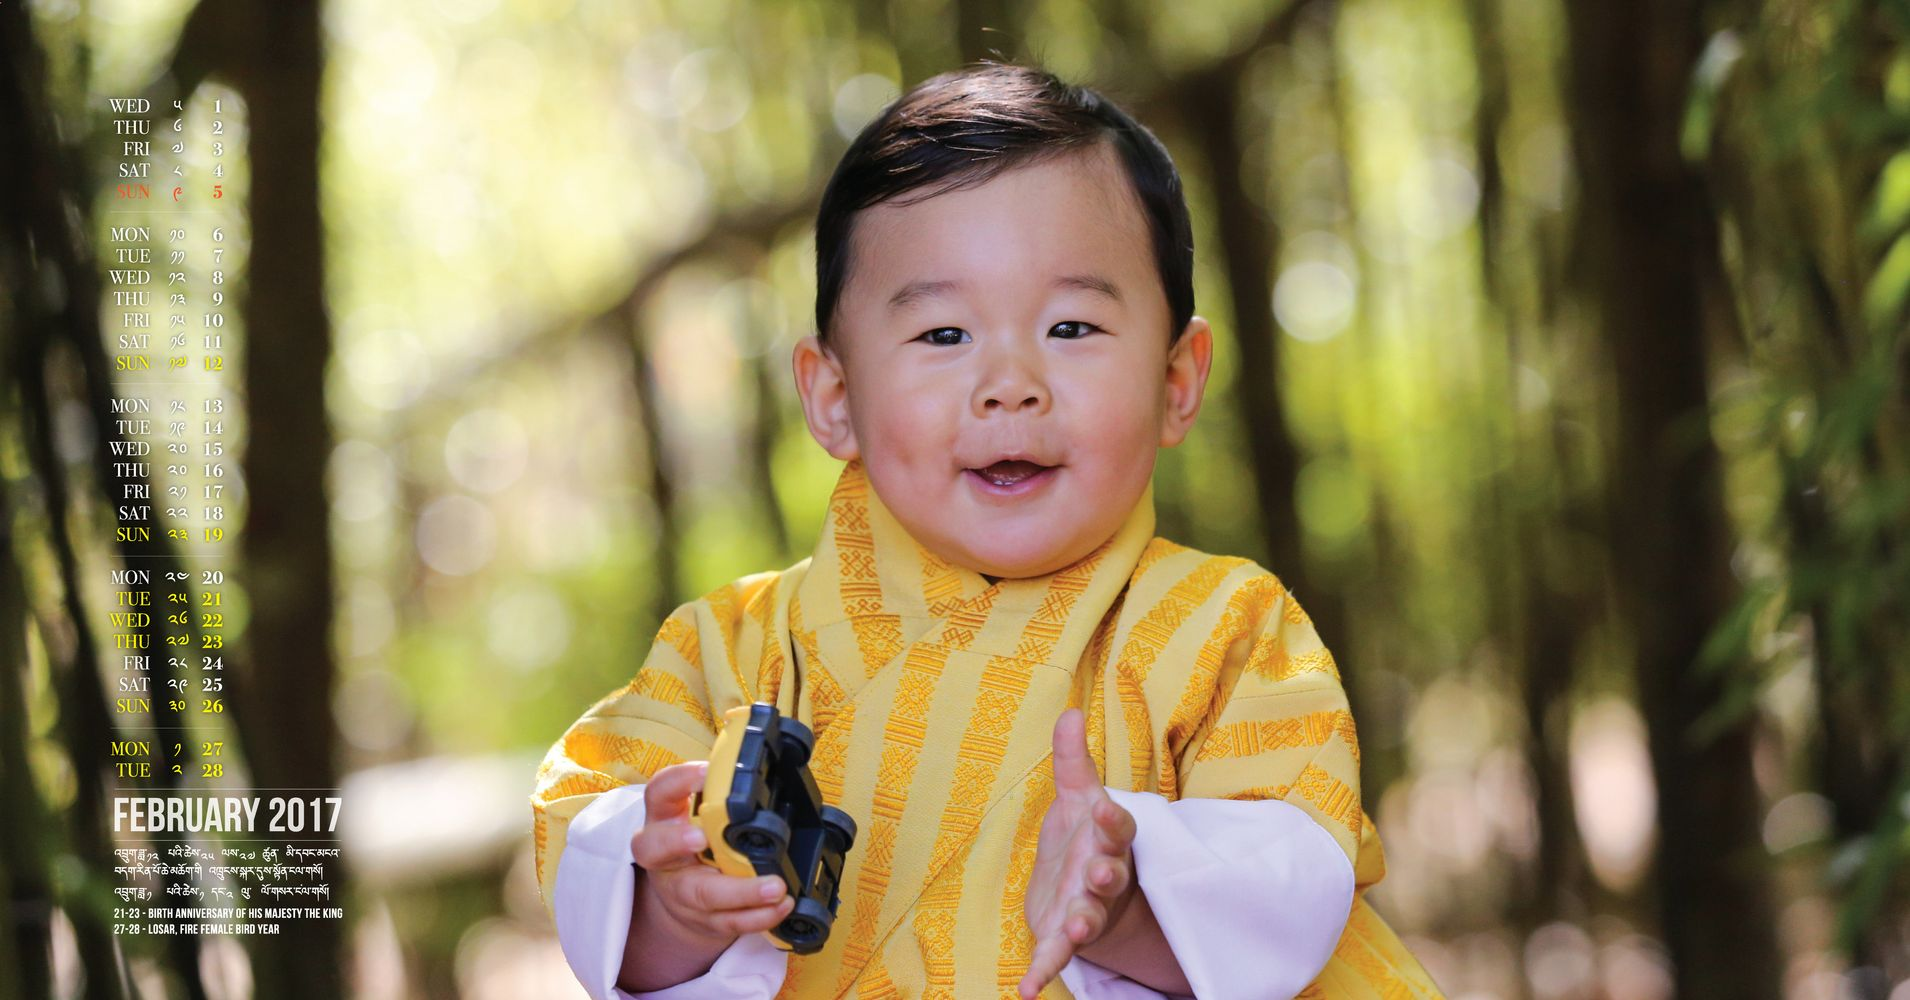 the baby prince of bhutan is absurdly adorable | huffpost